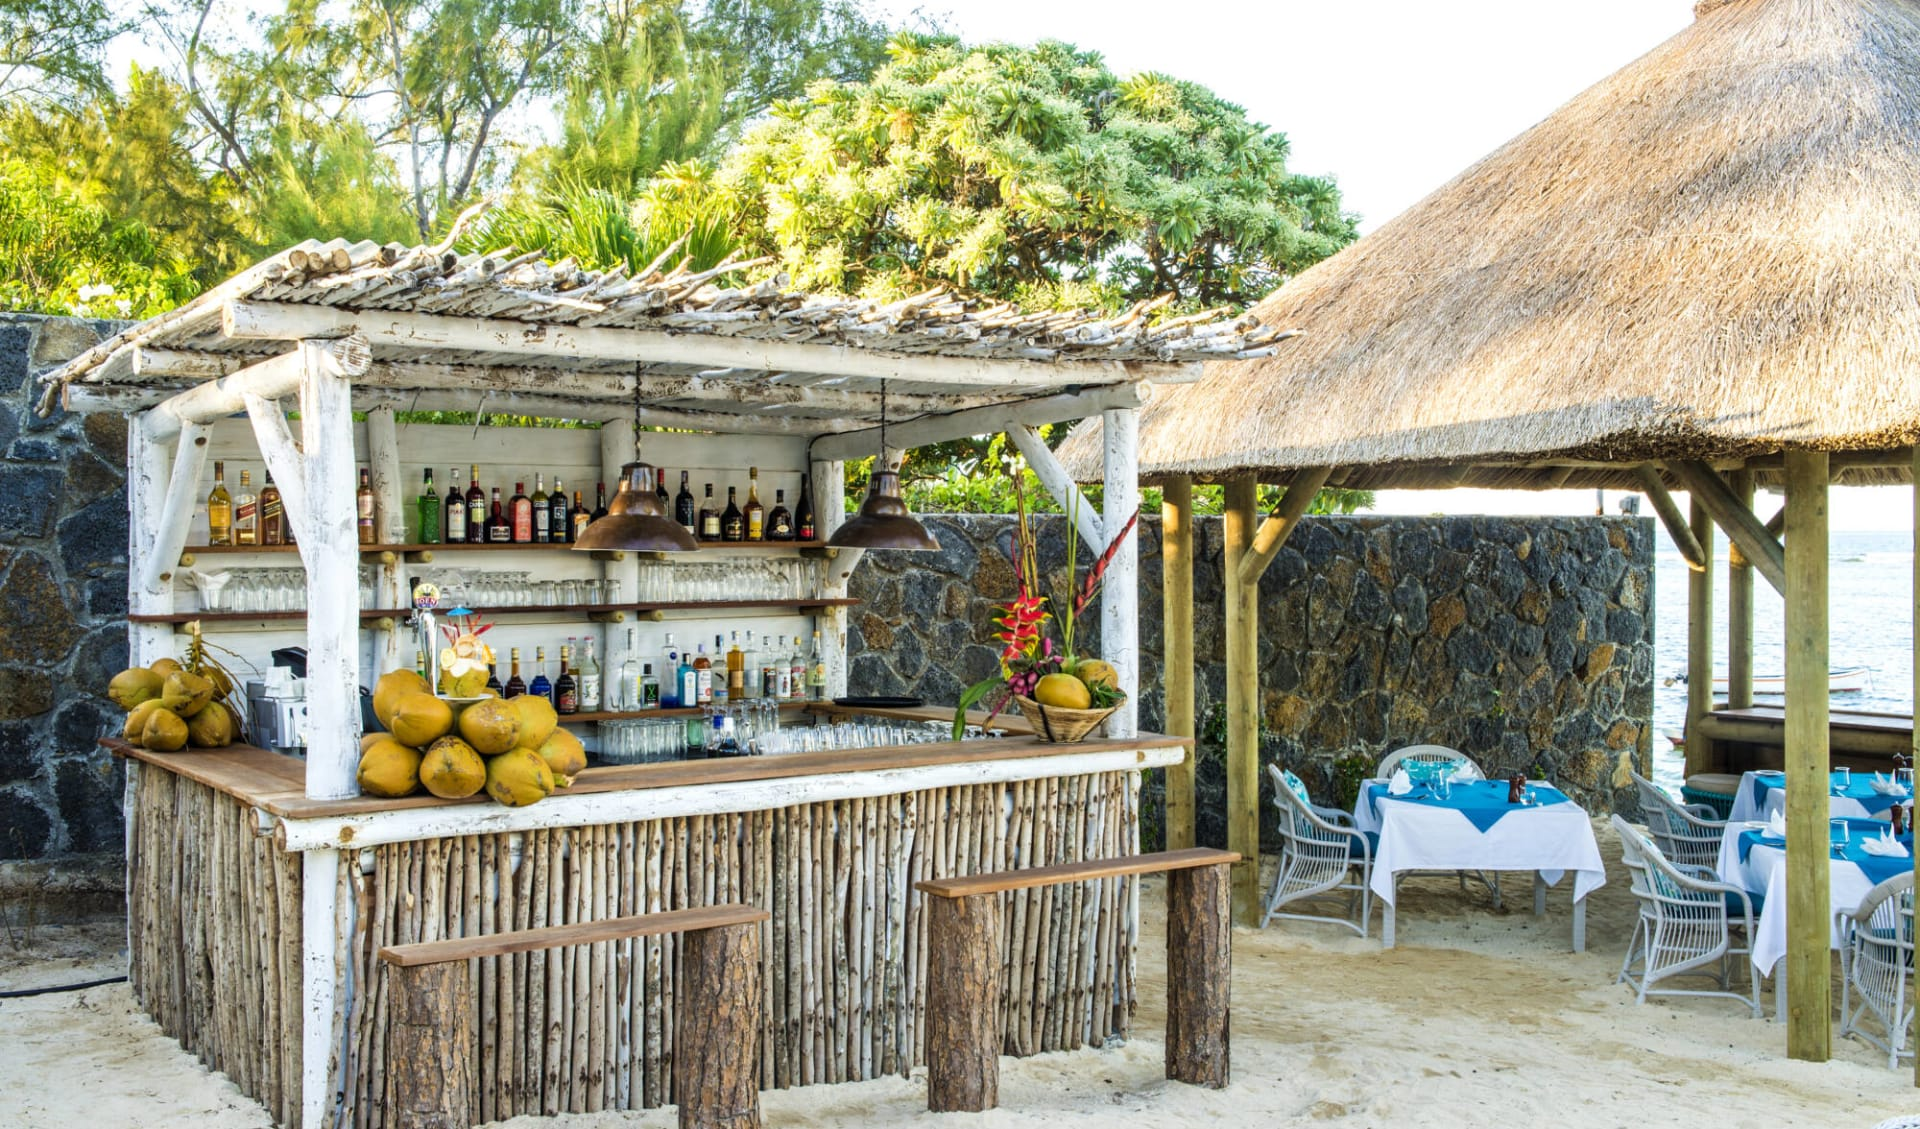 Seapoint Boutique Hotel in Pointe aux Canonniers: